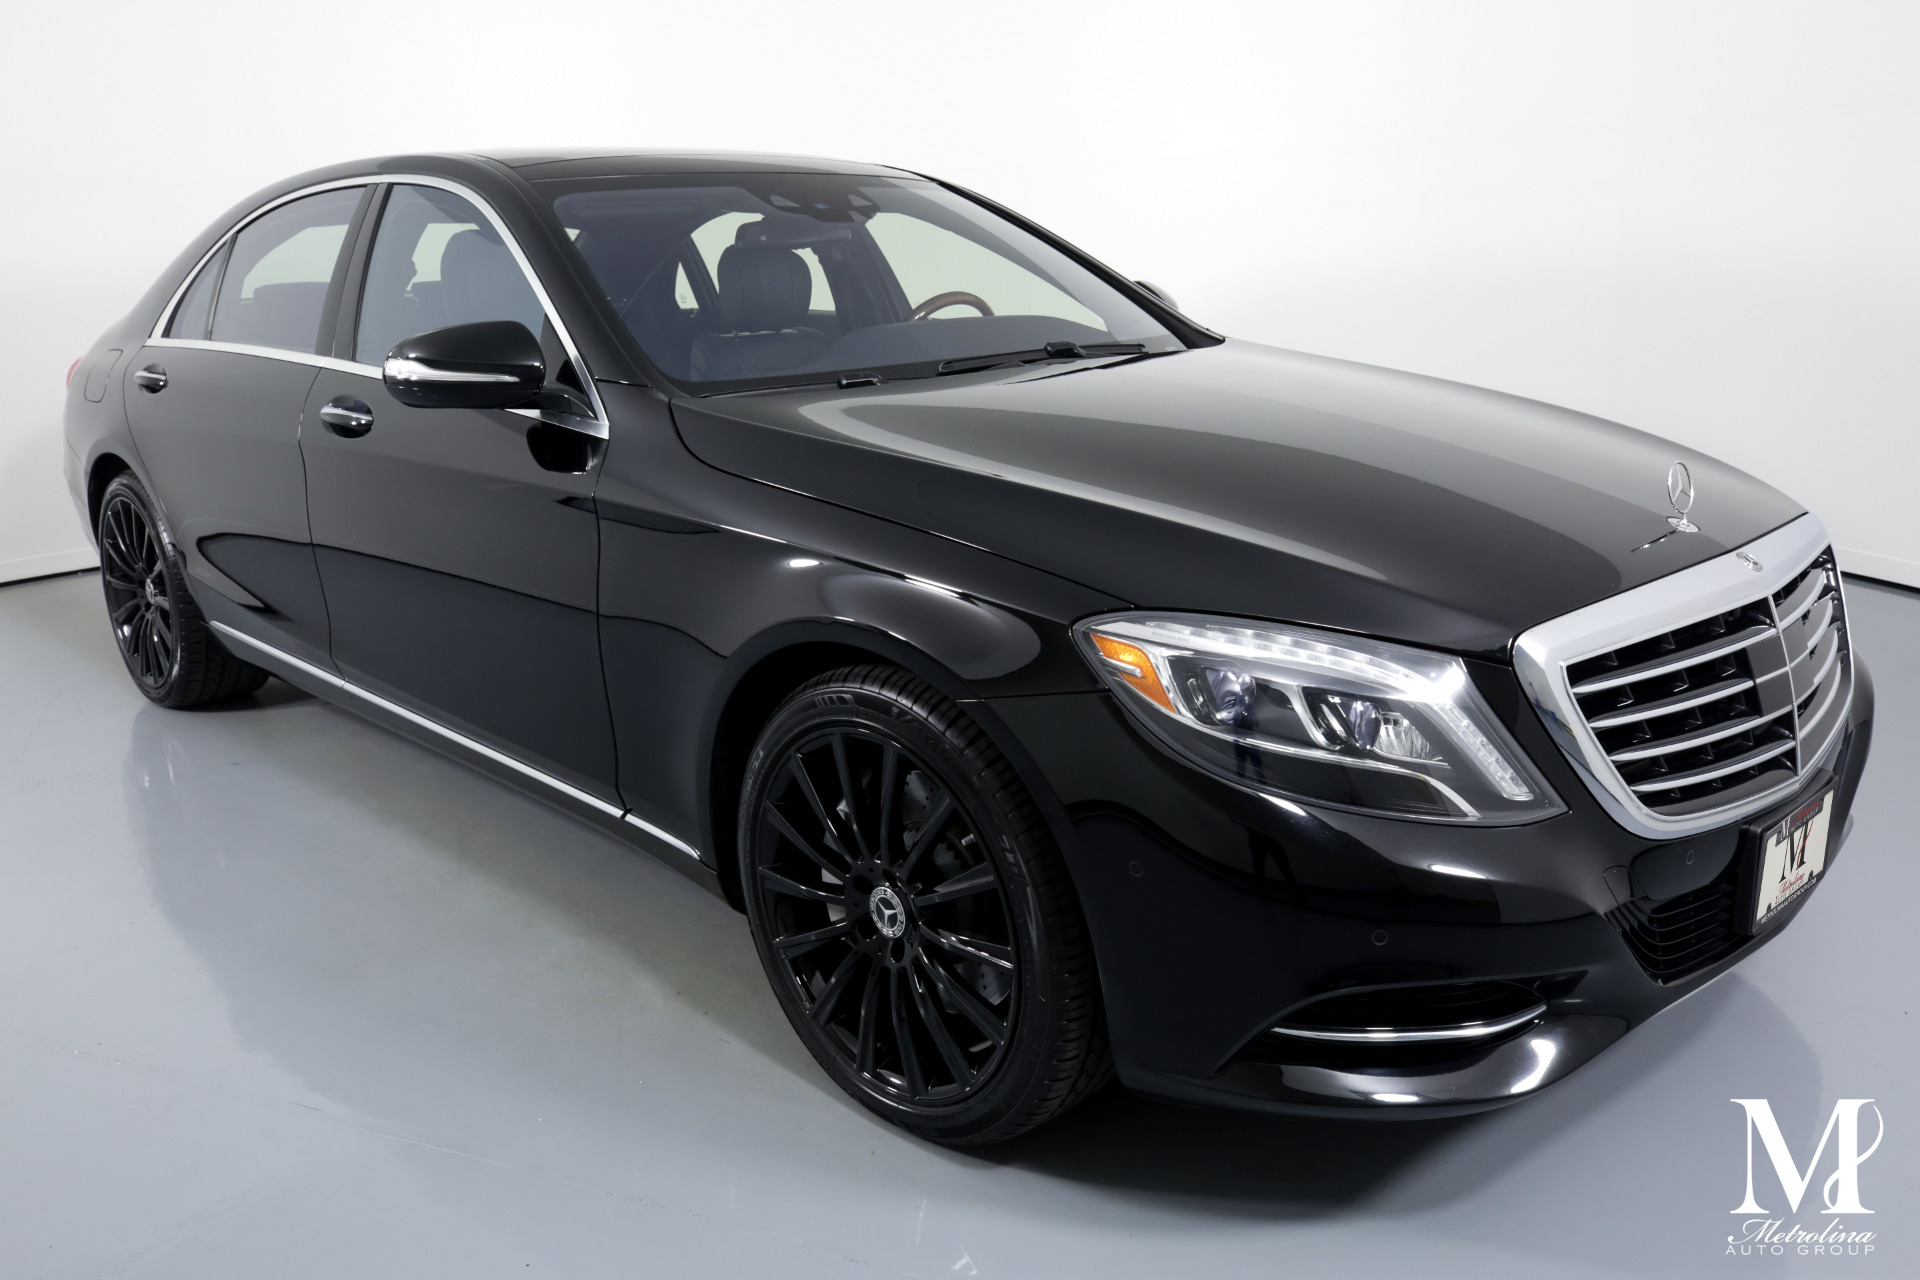 Used 2017 Mercedes-Benz S-Class S 550 4MATIC for sale $54,996 at Metrolina Auto Group in Charlotte NC 28217 - 2